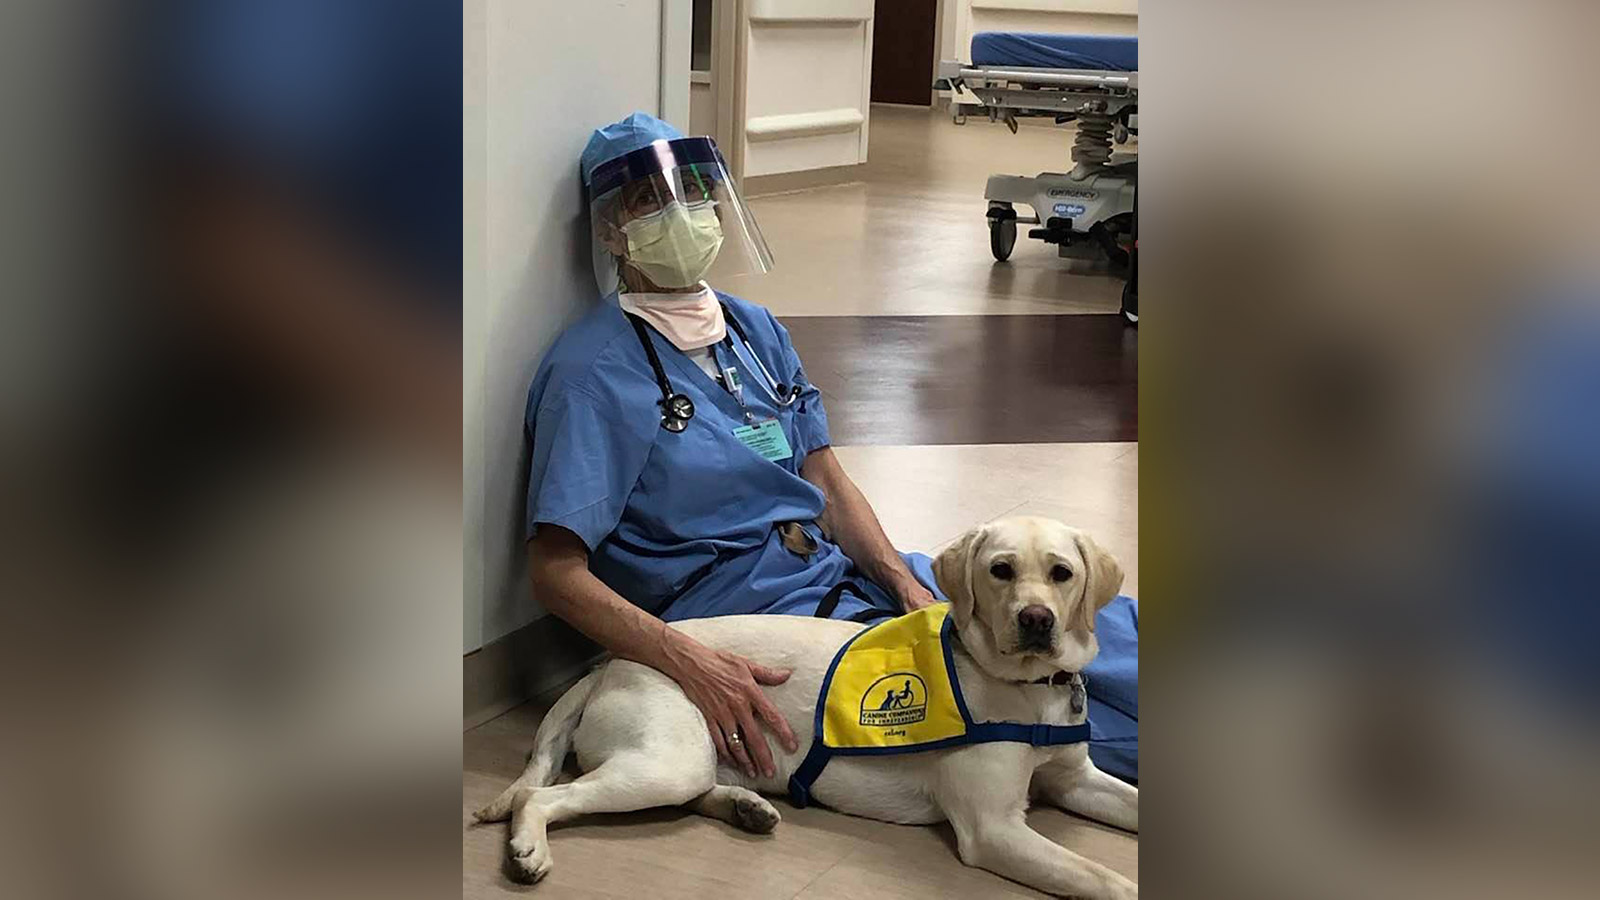 A future service dog brings comfort to ER doctors on the frontlines. (Susan Ryan and Wynn.)